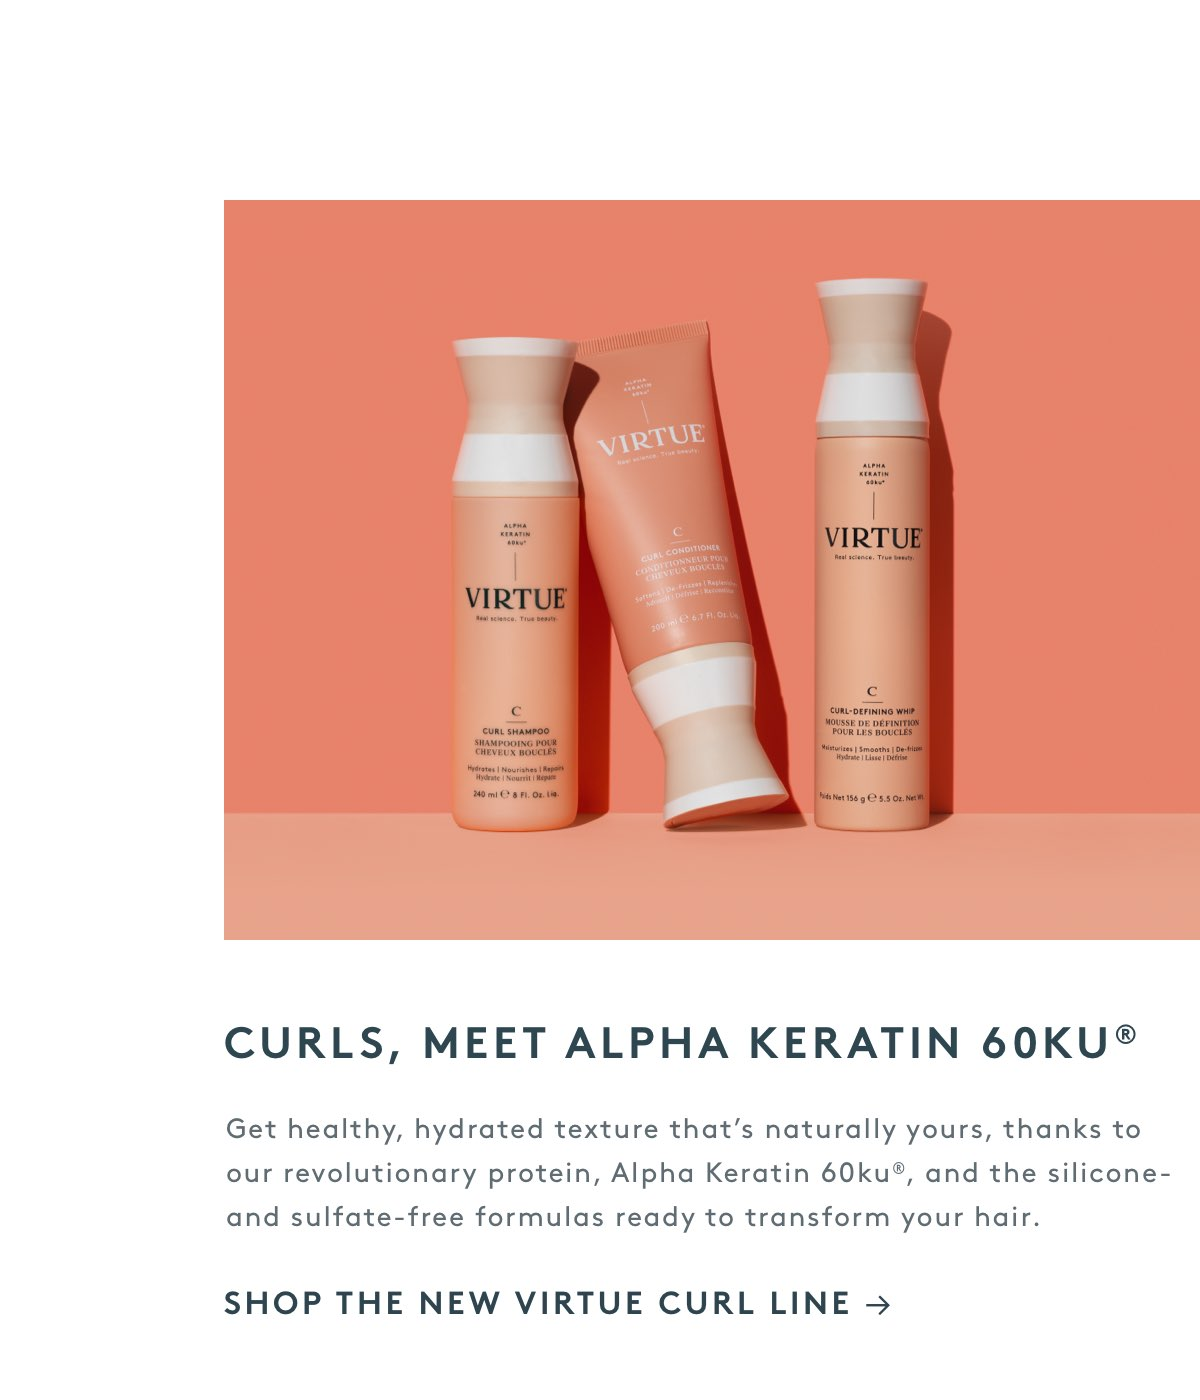 Curls, Meet Alpha Keratin 60ku®